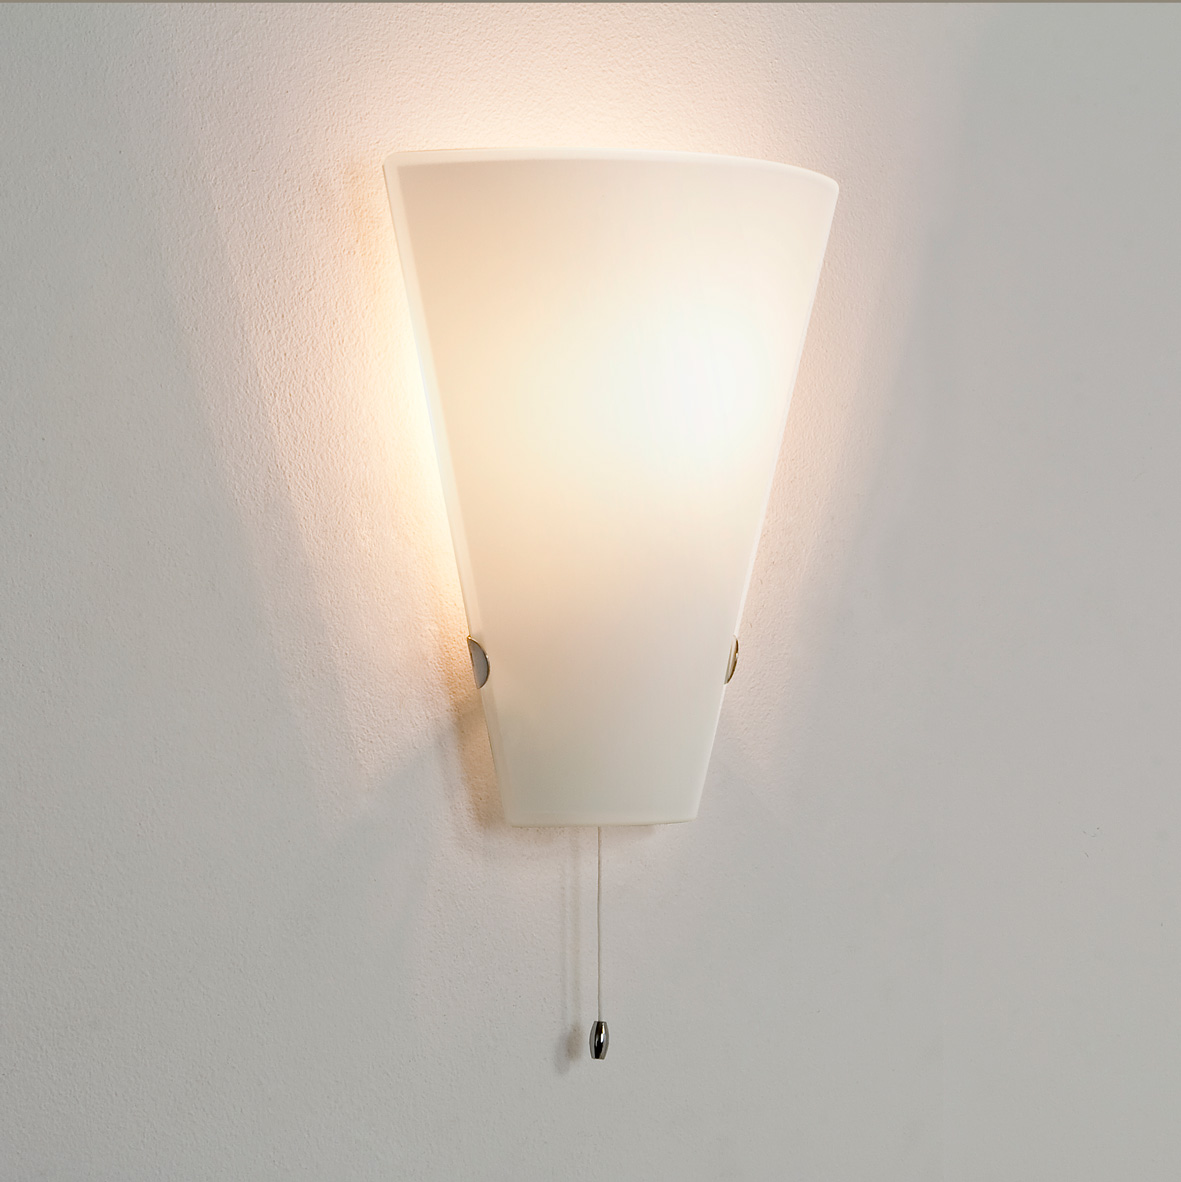 Astro Taper 0248 dimmable pull cord switch wall light 60W E14 lamp IP20 glass